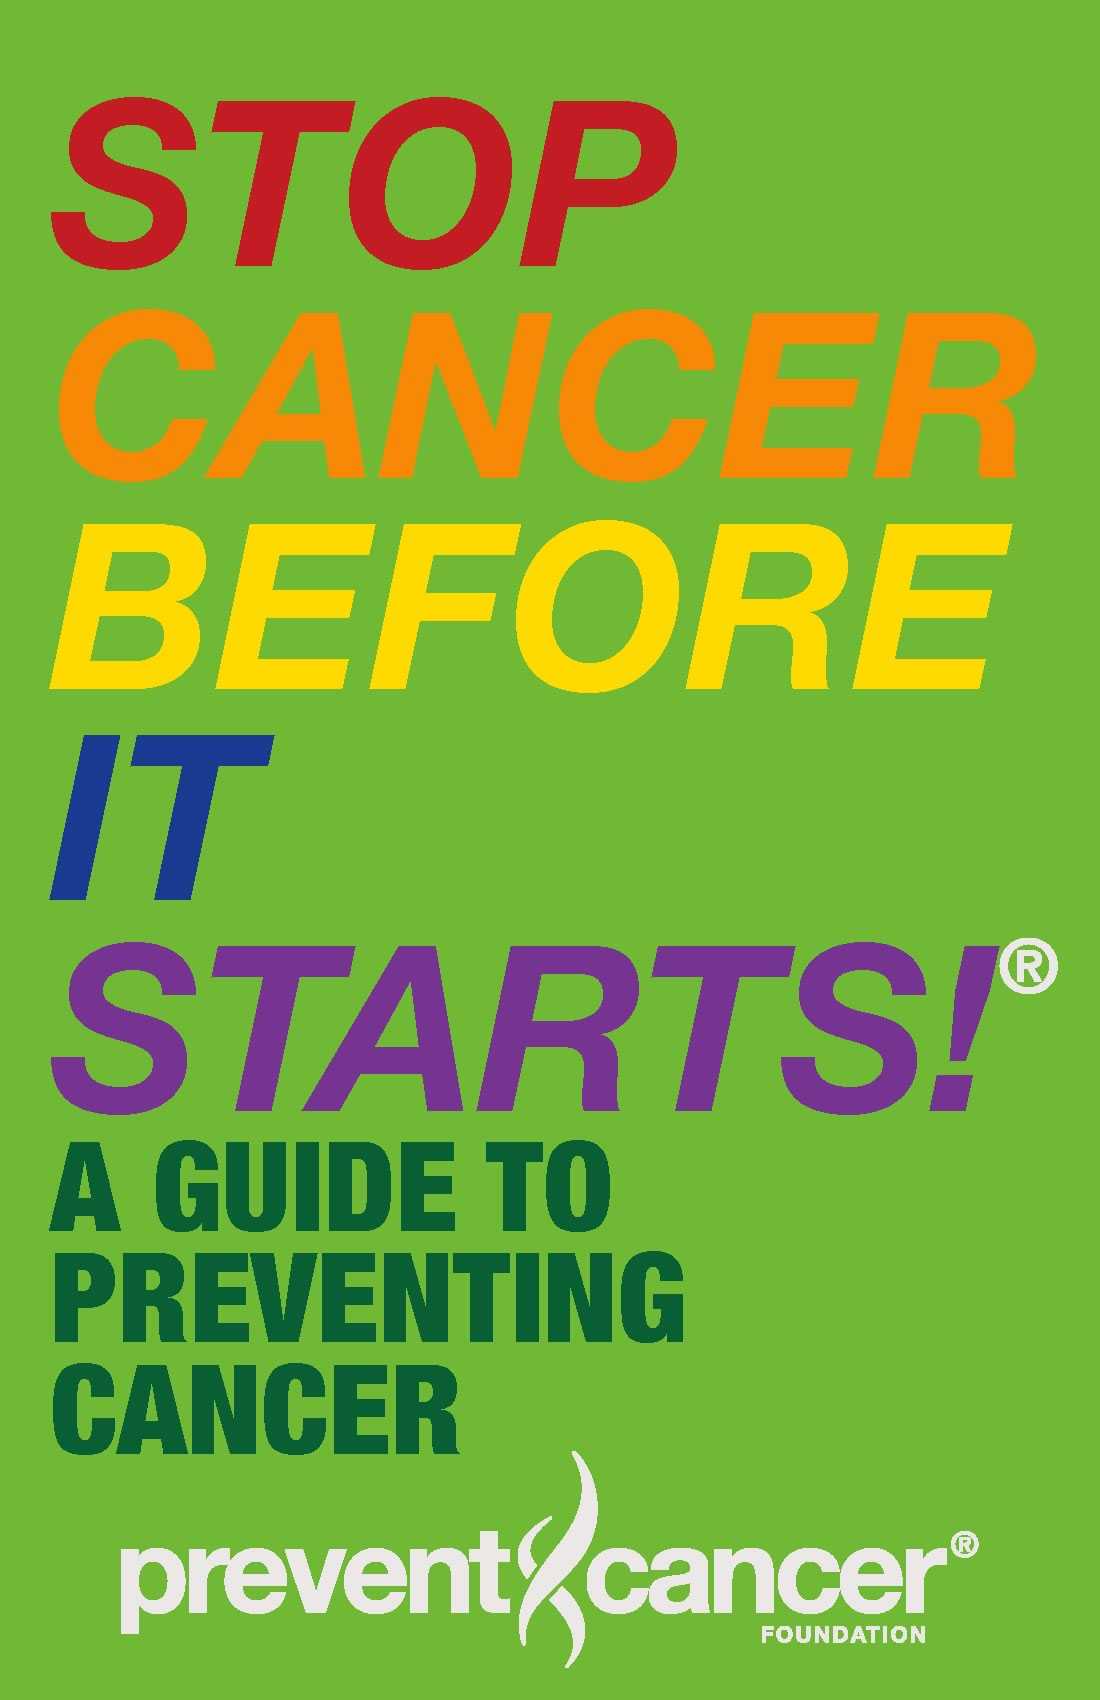 preventing cancer If you or someone you love has been diagnosed with cancer, learn about diagnosis, treatment, risk factors, and much more.